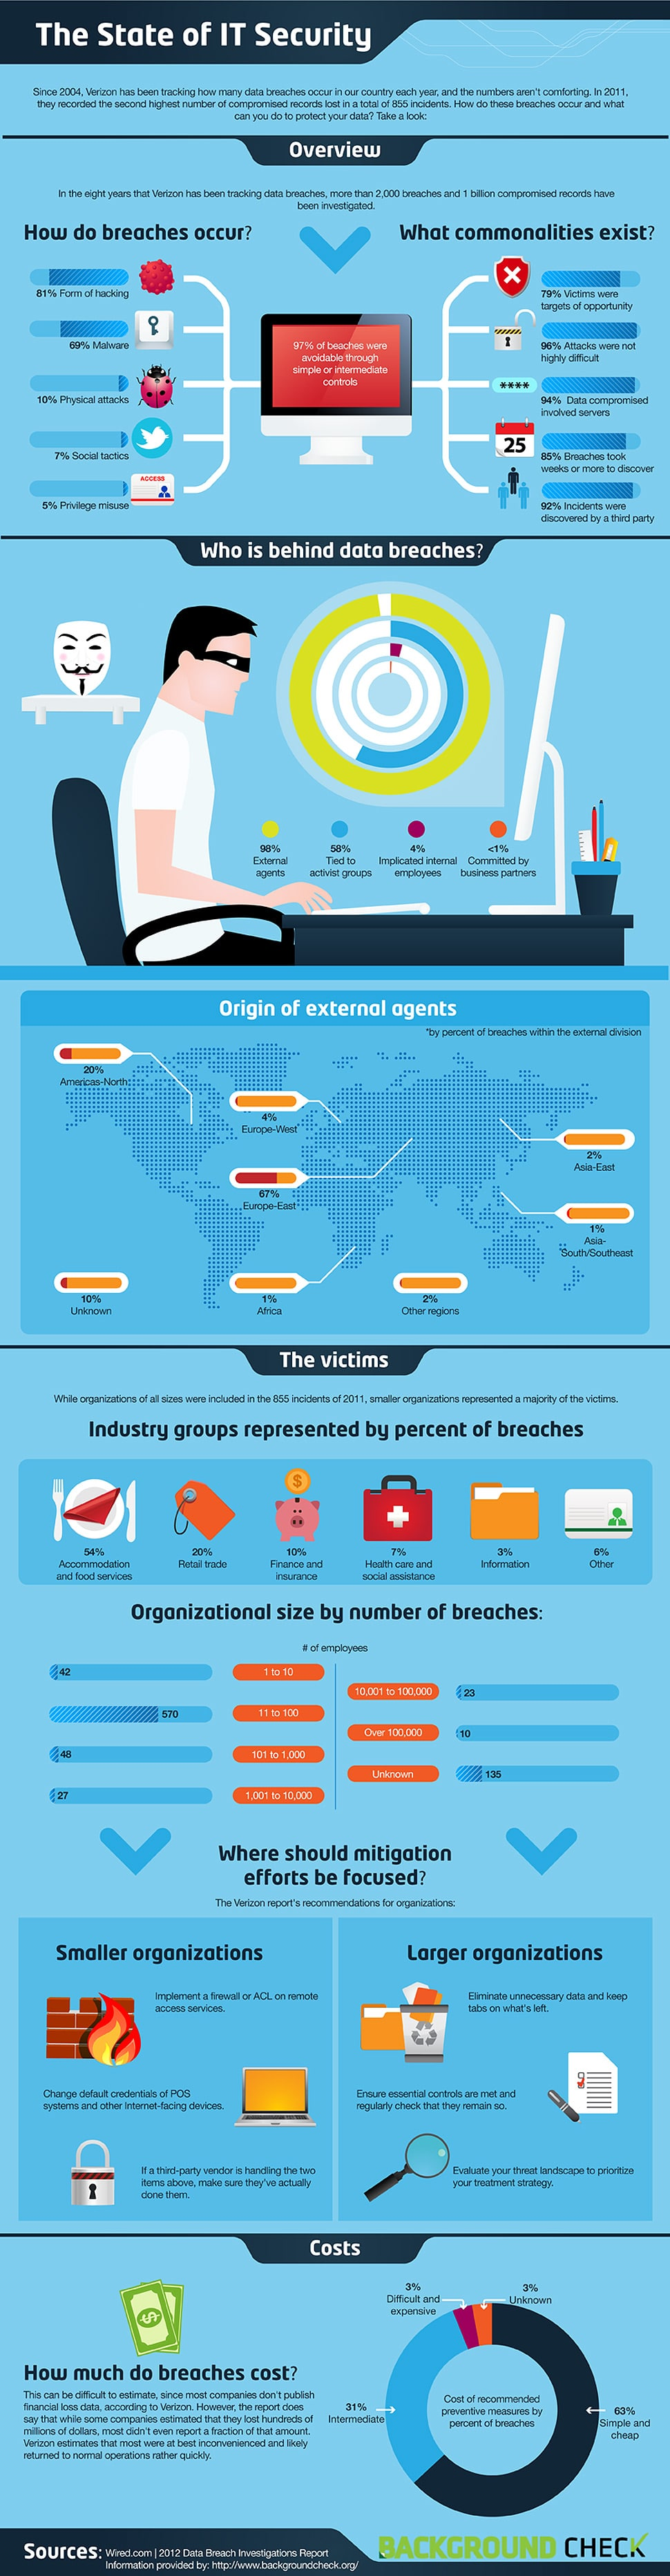 state-of-it-security-infographic